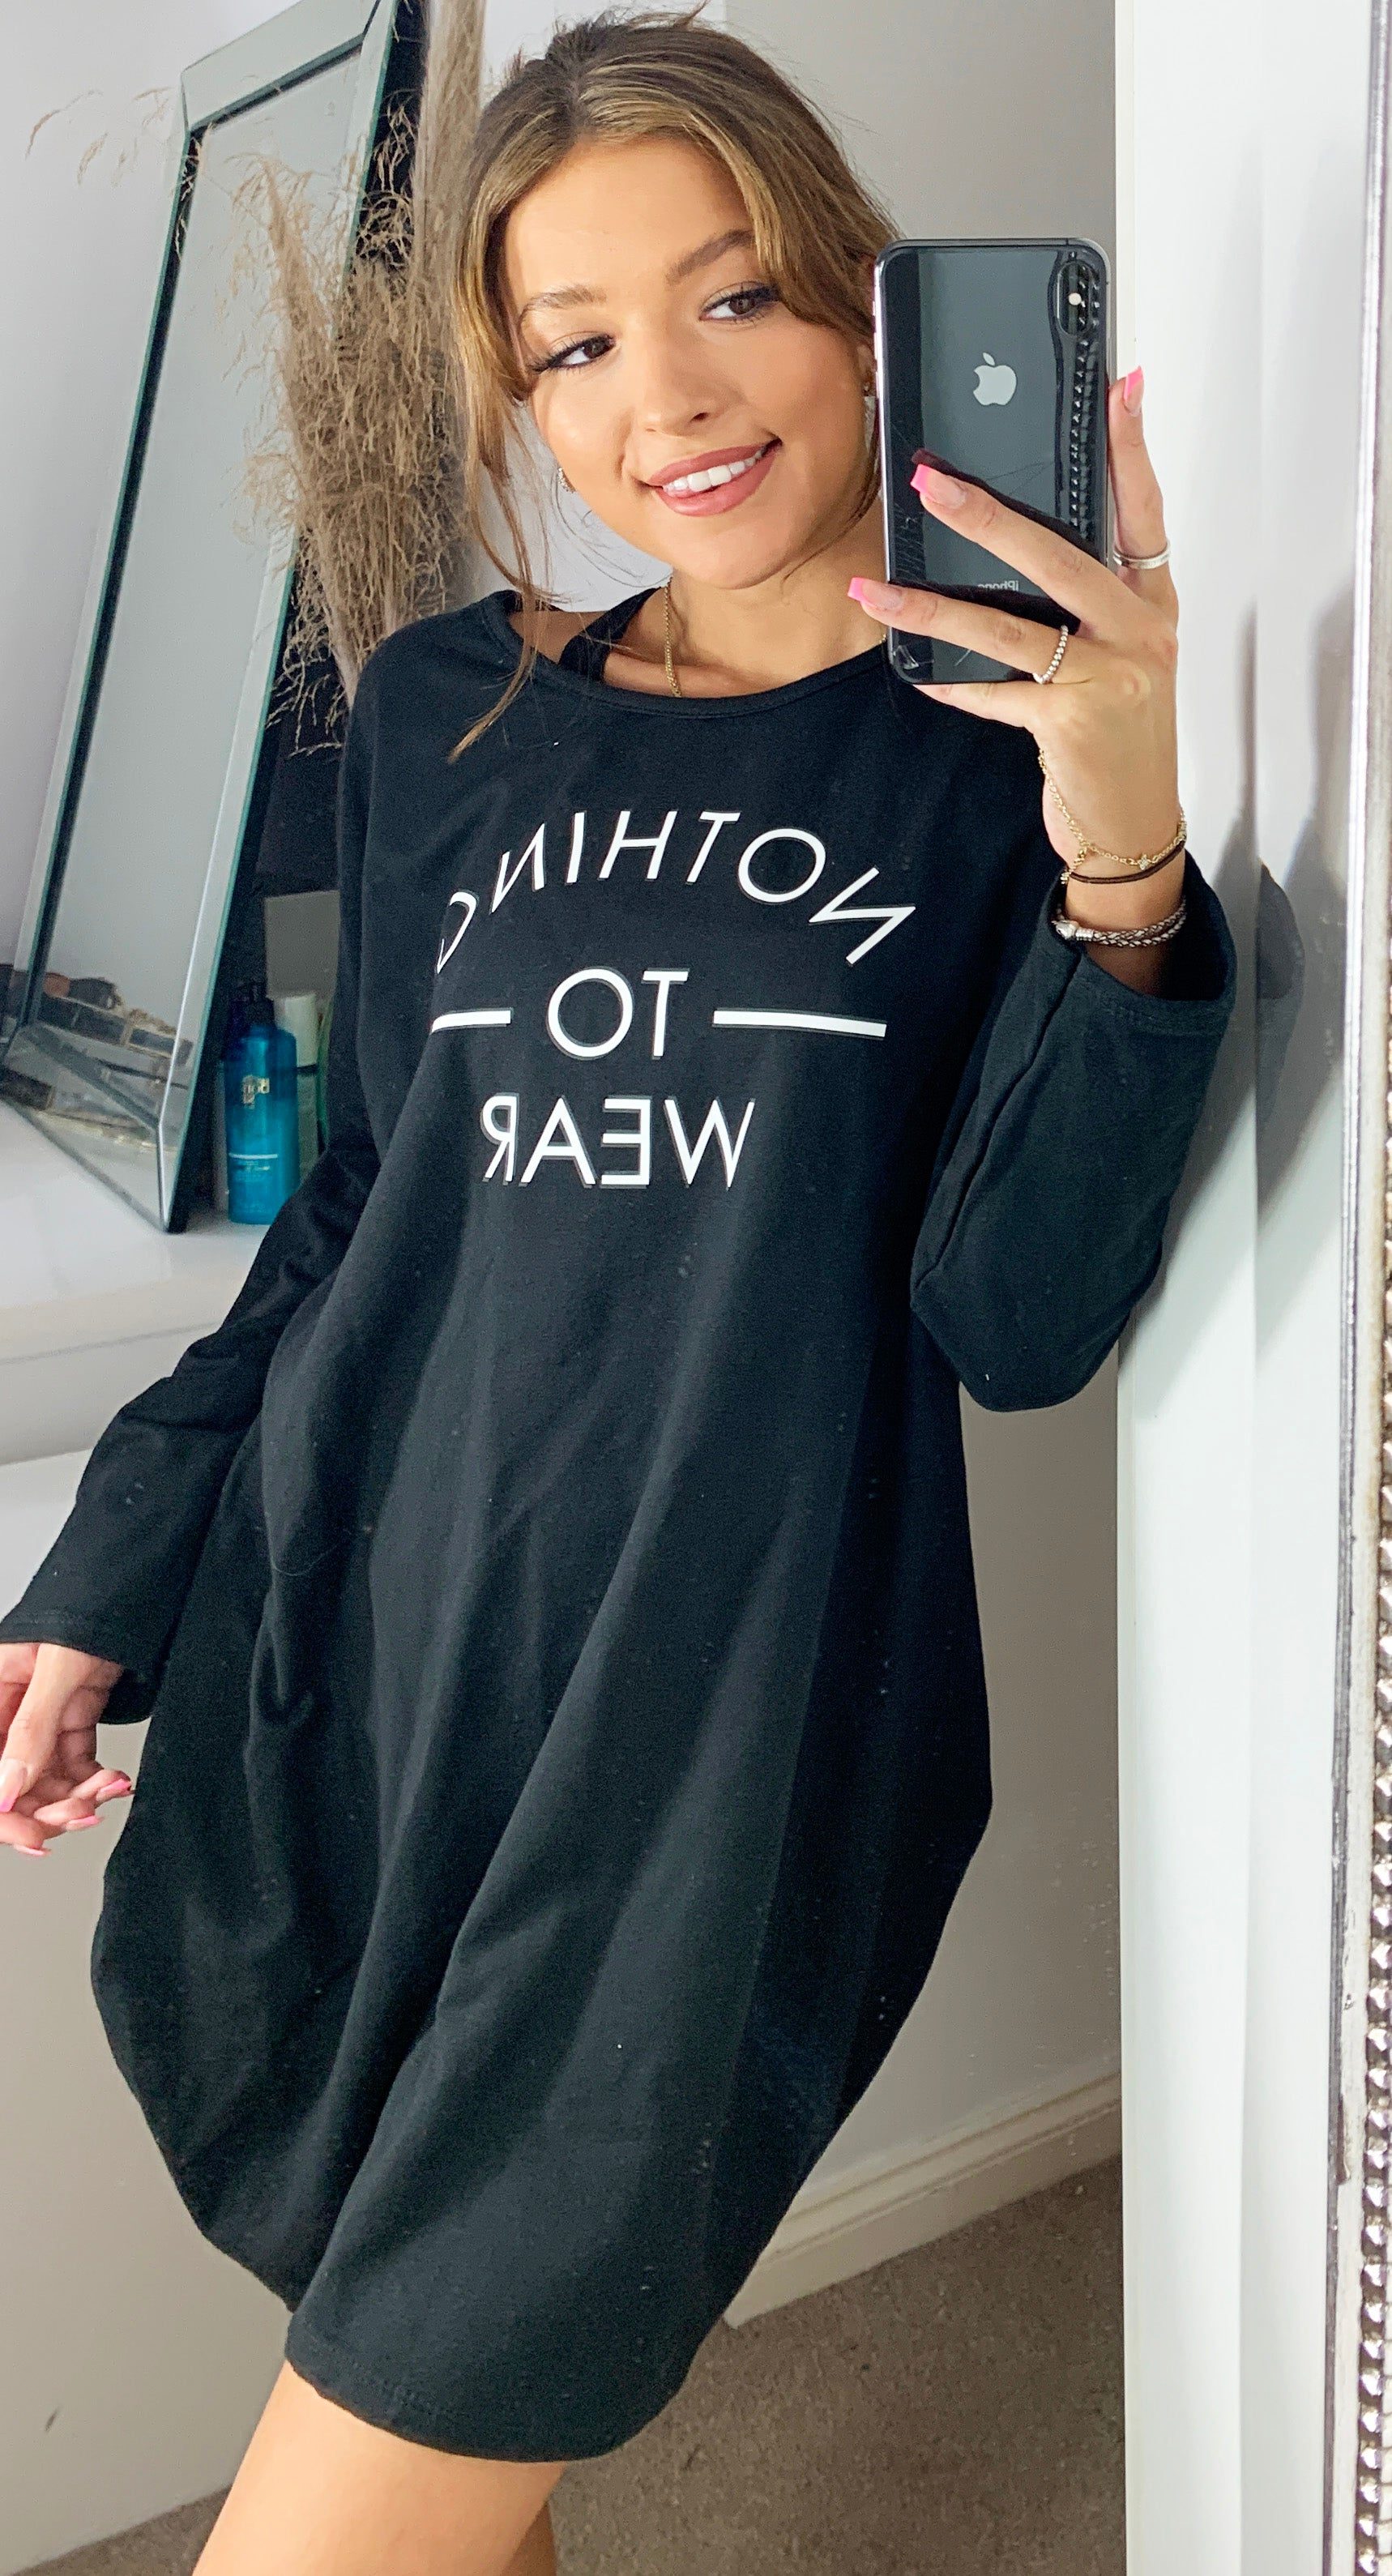 Nothing To Wear Sweatshirt Loungewear Dress in Black with Slogan